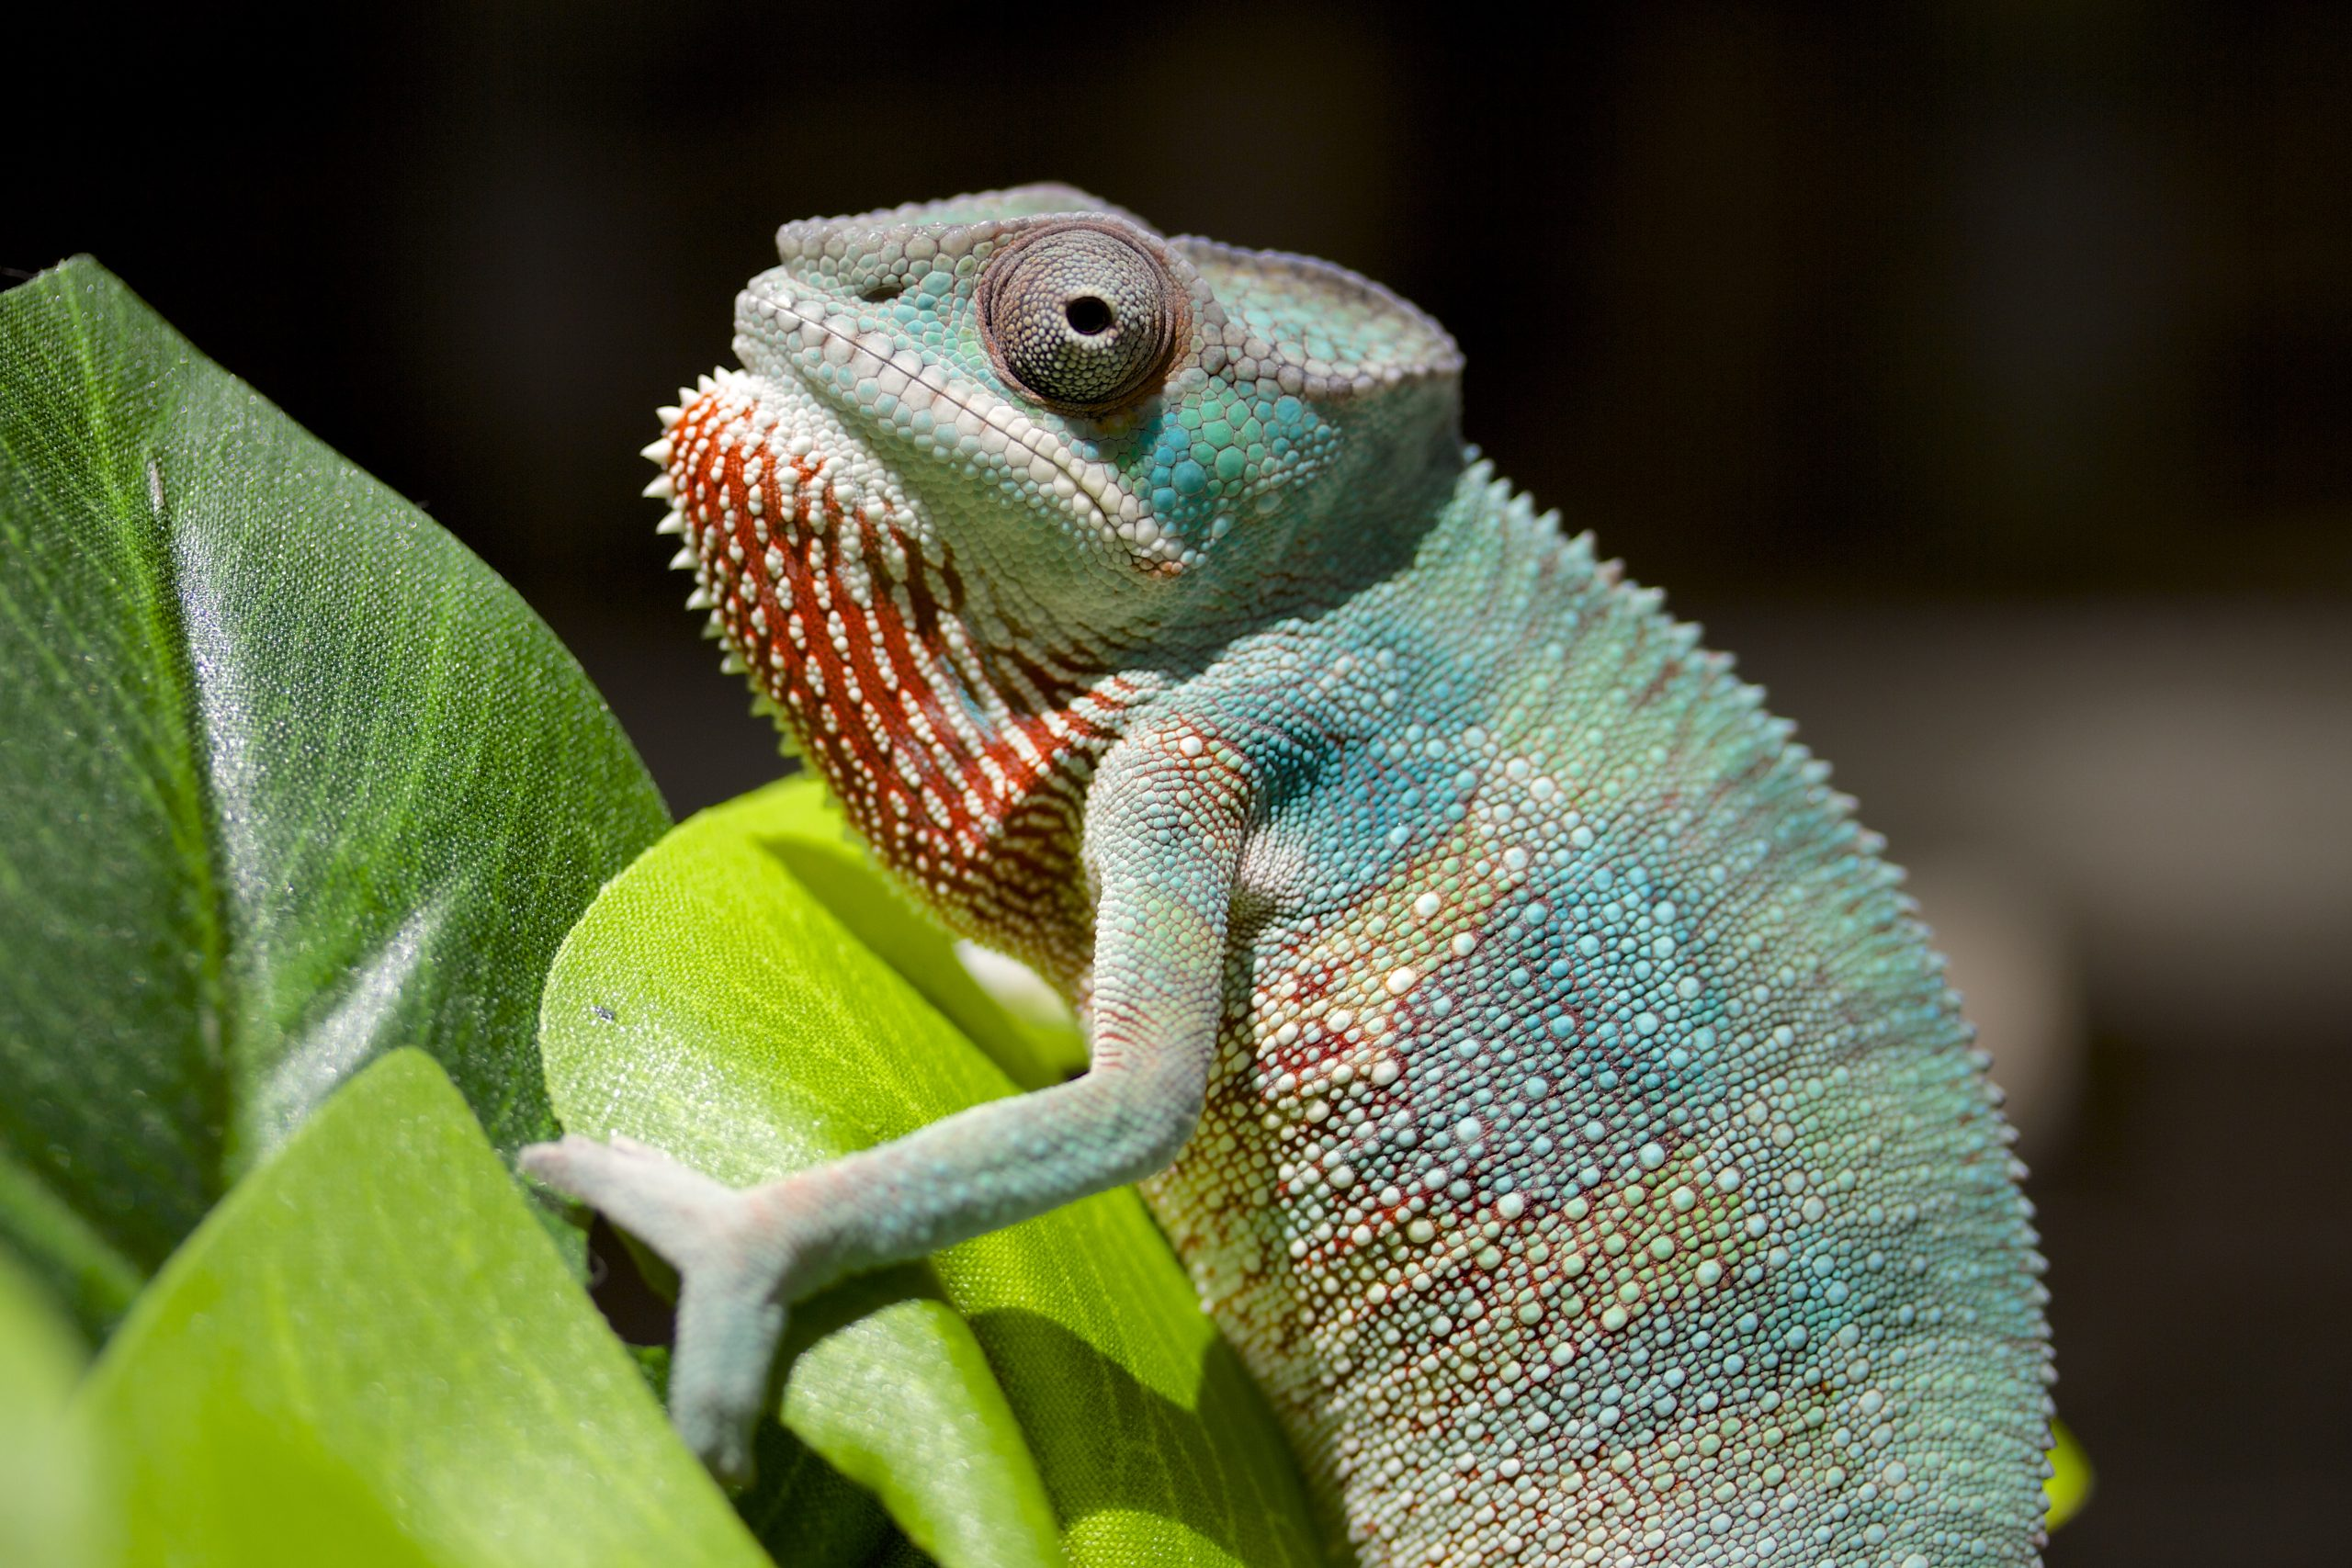 A chameleon—or is it a student?—asks how it might help us.